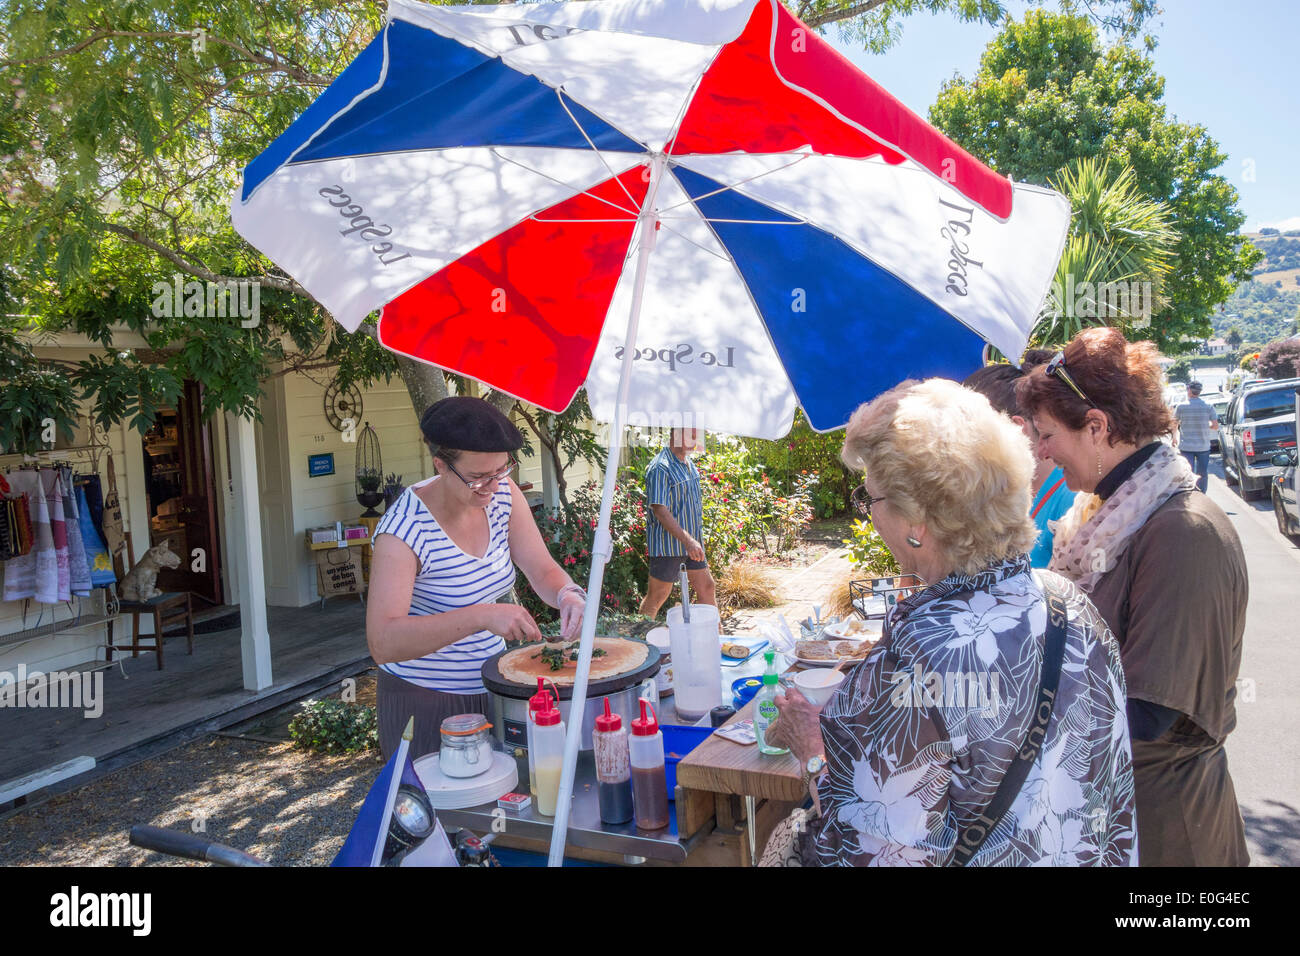 Akaroa New Zealand - Les Crêpes d'Elise making selling French crepes pancakes to cruise passengers from a food cart at French shop La Folie Jolie - Stock Image